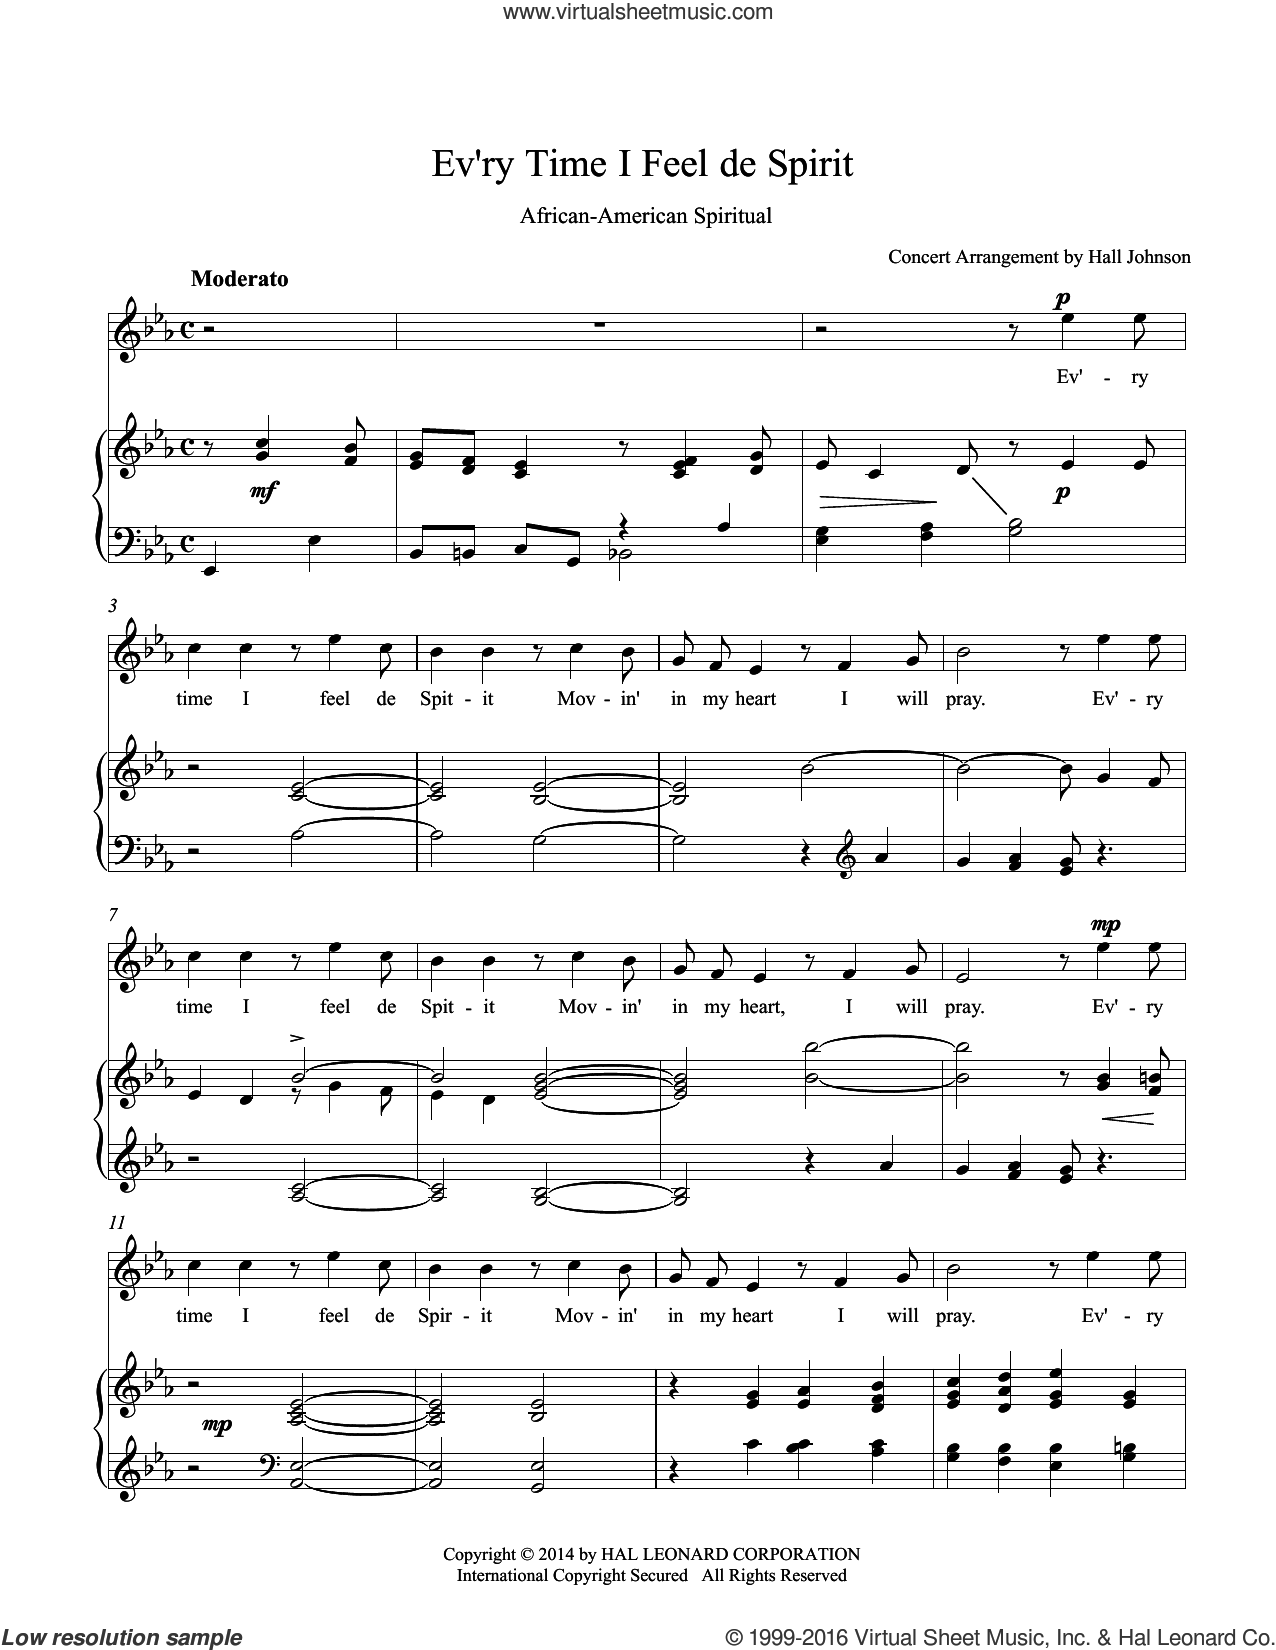 Ev'ry Time I Feel de Spirit (E-flat) sheet music for voice and piano by Hall Johnson. Score Image Preview.